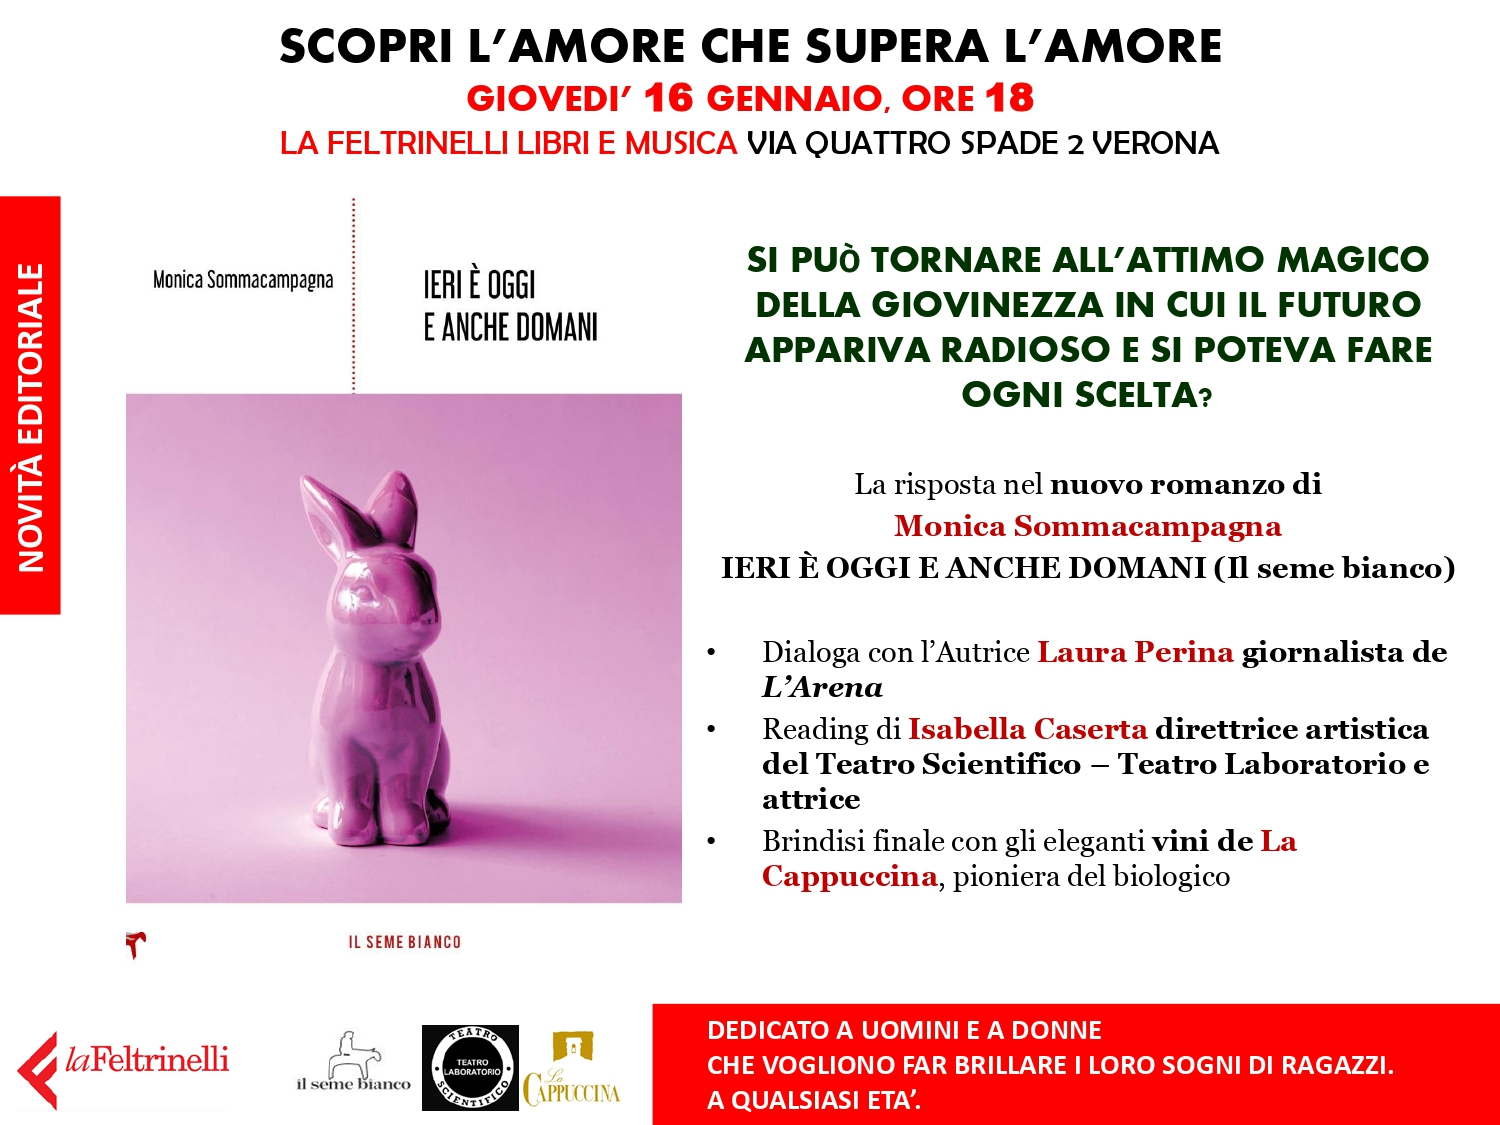 16.1 Evento in Feltrinelli a Verona